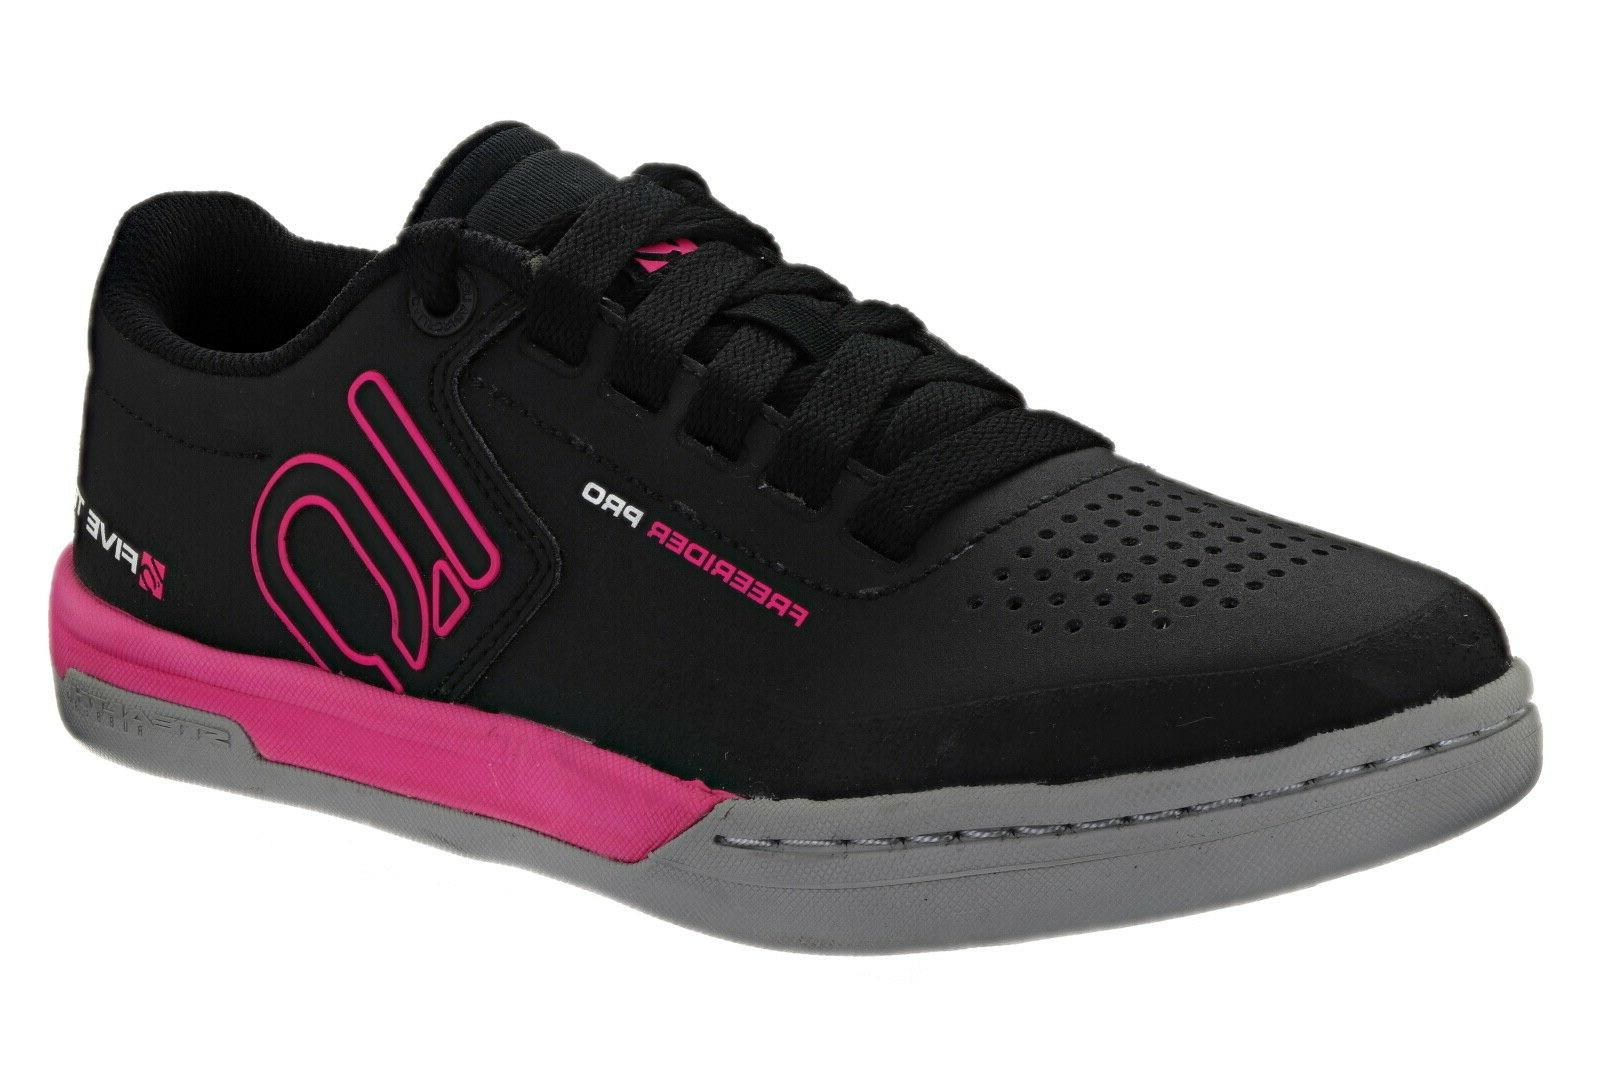 freerider pro by adidas women s size